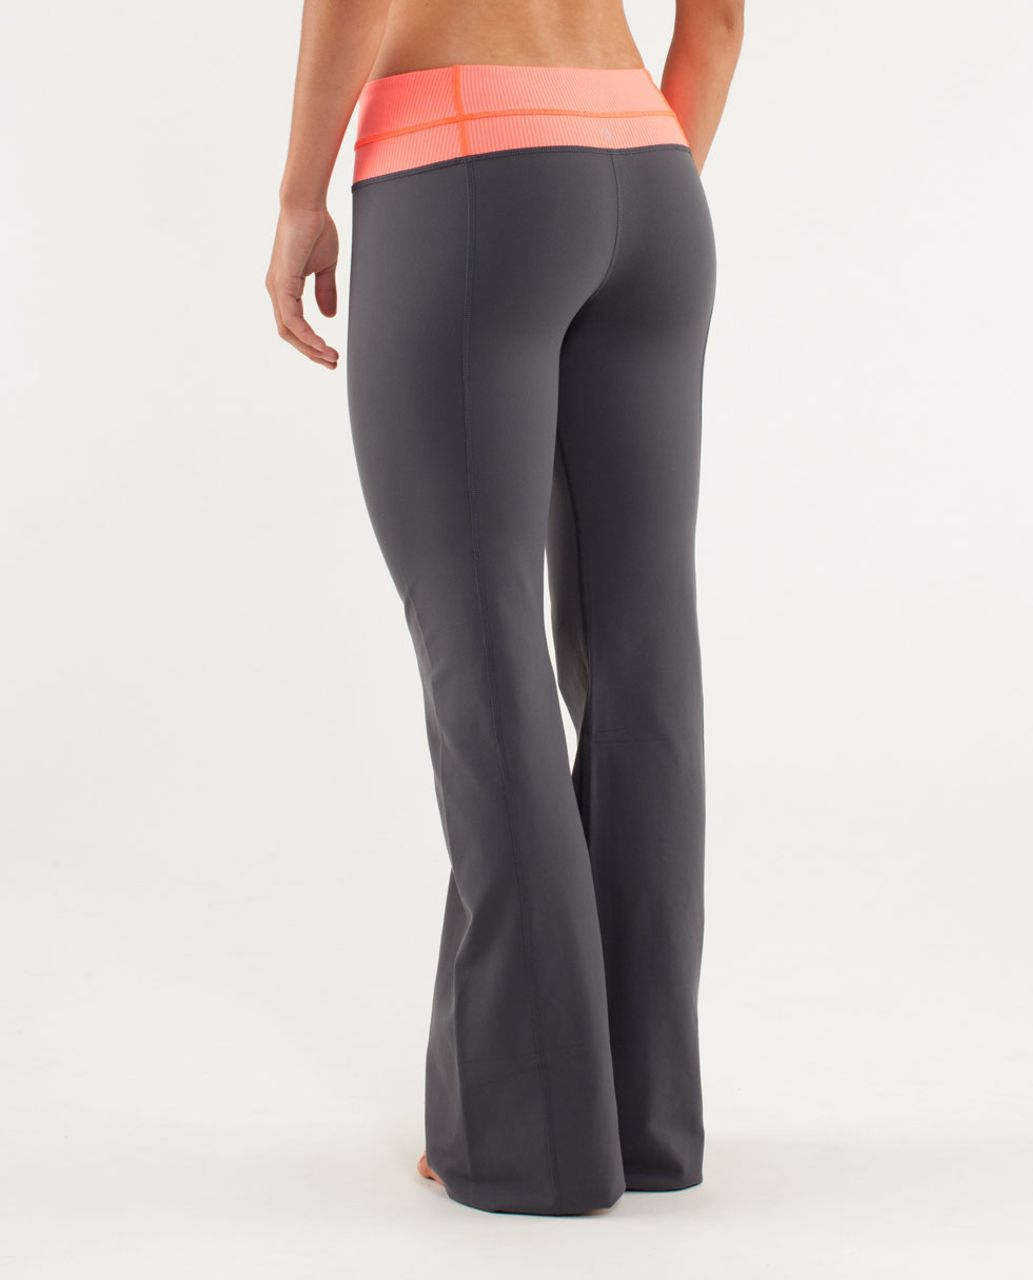 Lululemon Groove Pant (Regular) - Coal / Tonka Stripe Flare / Heathered Flare